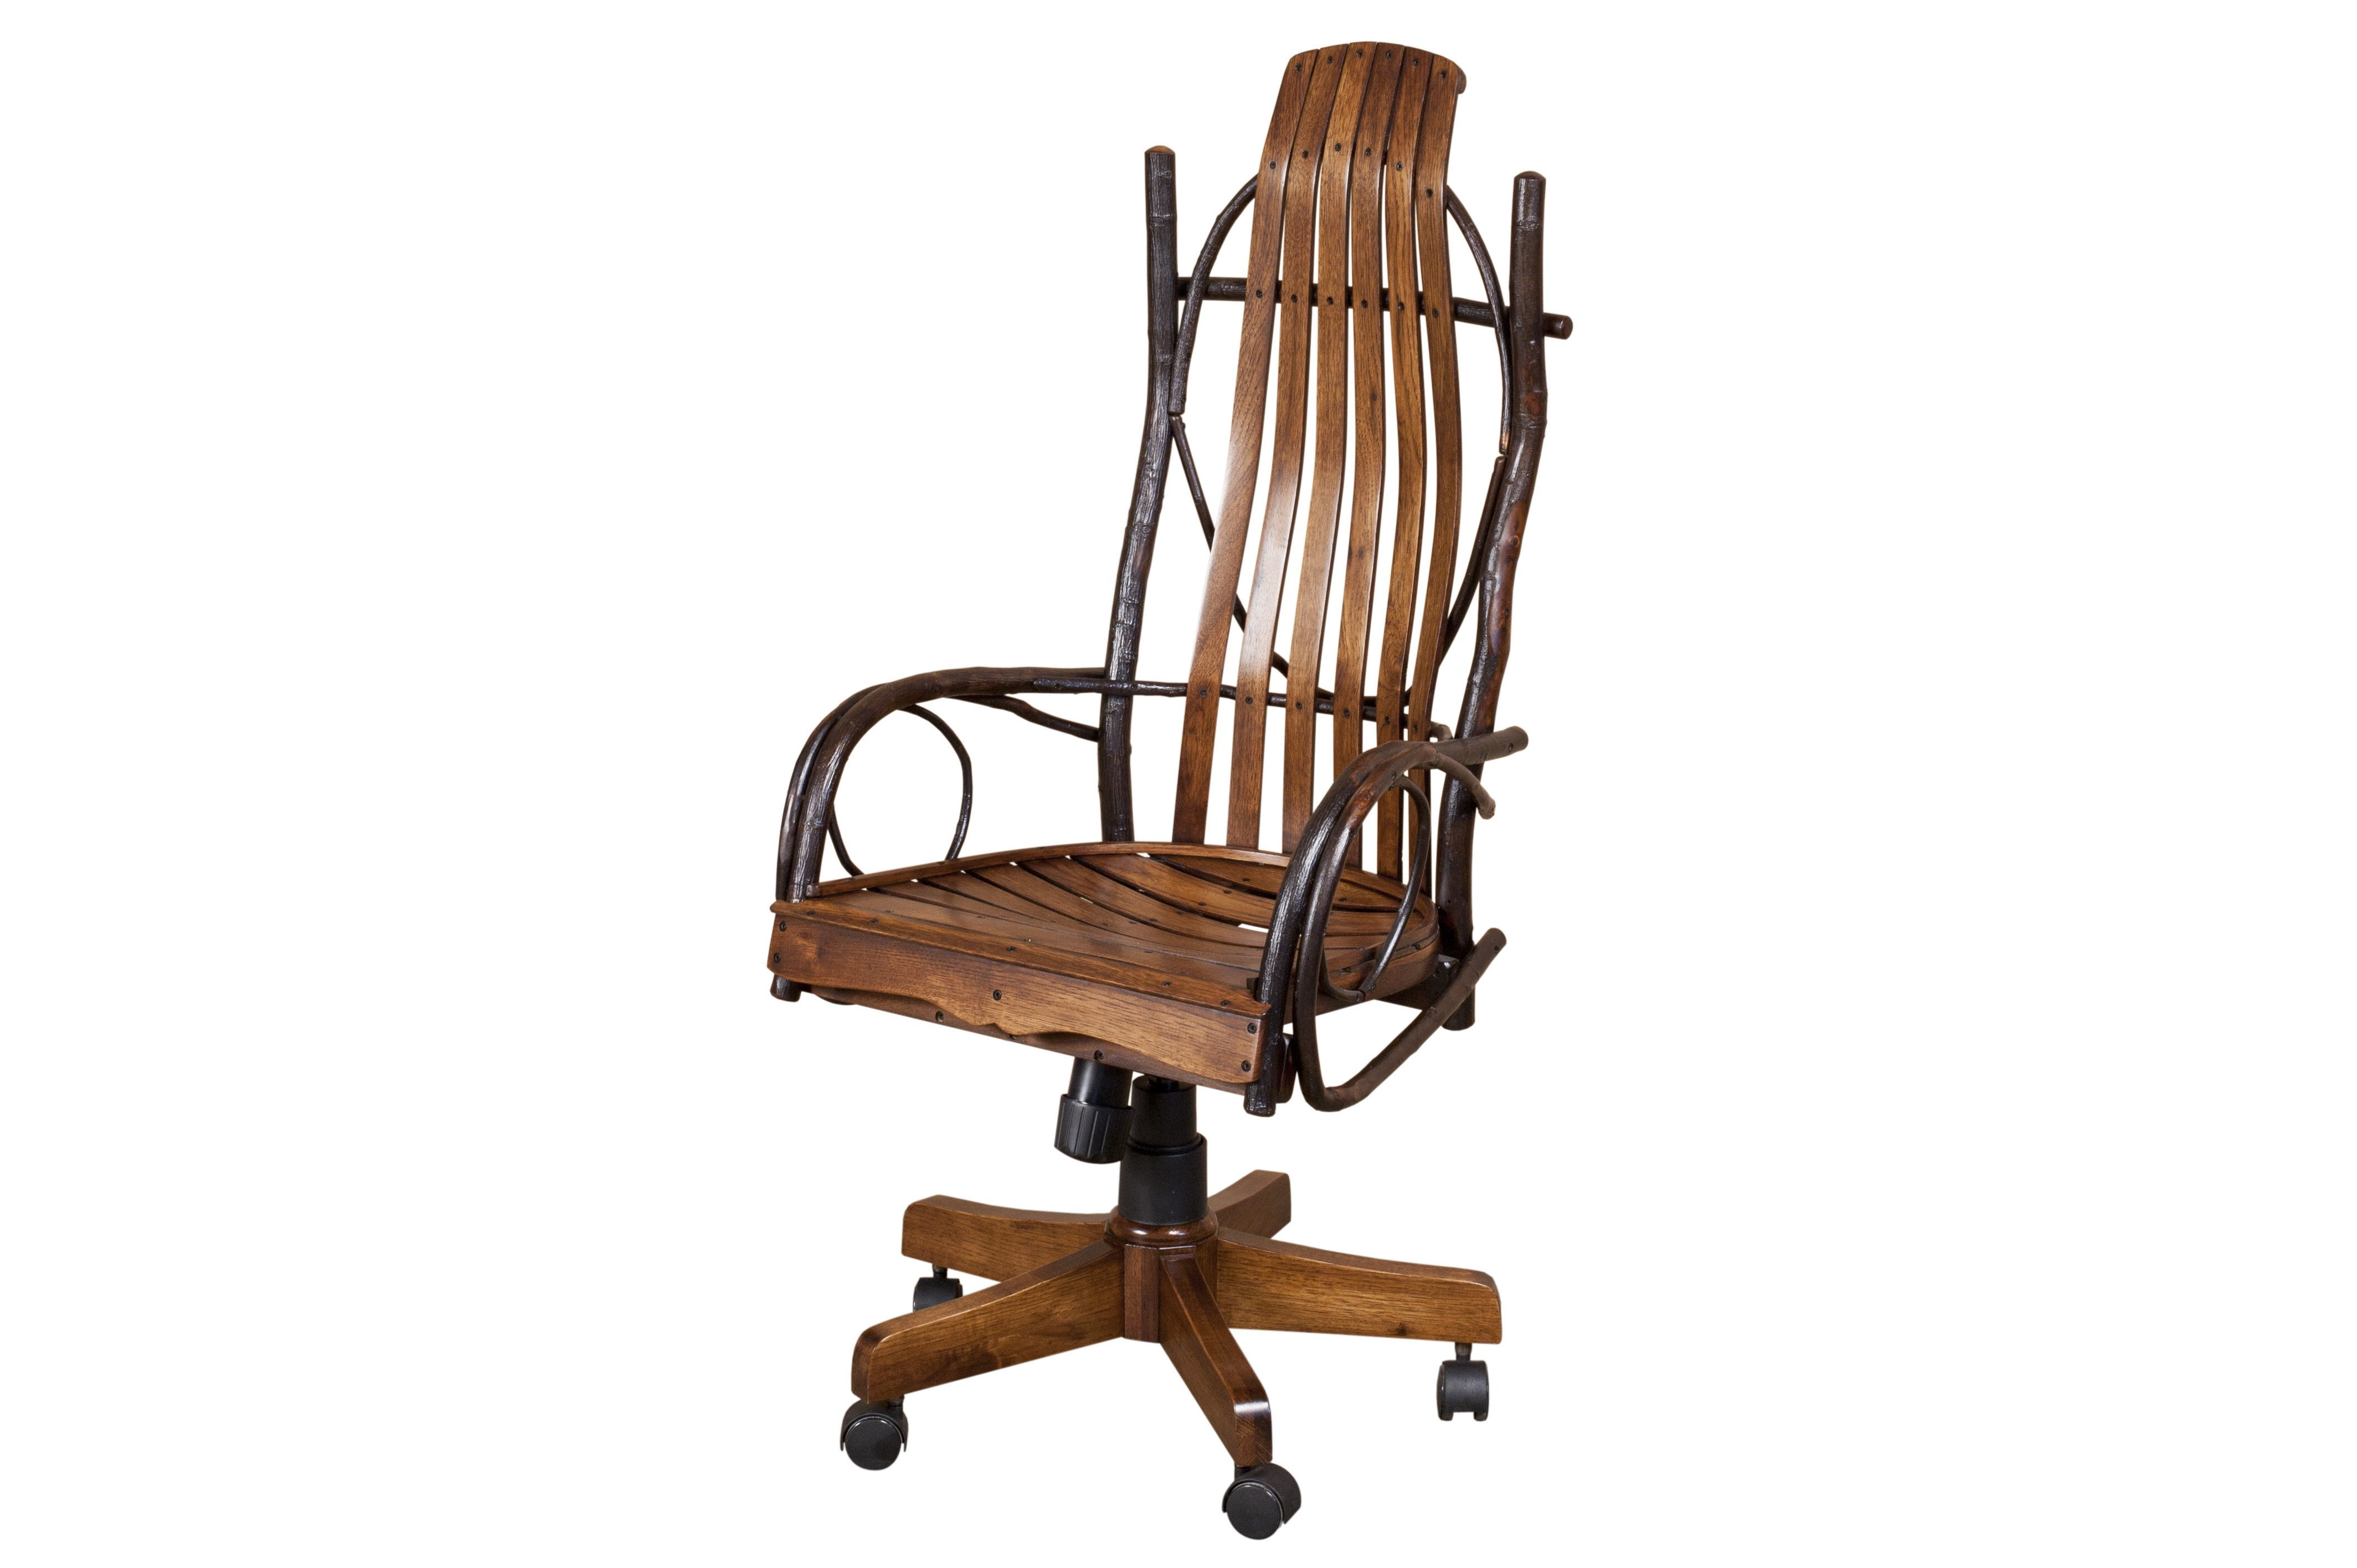 amish rustic hickory twig desk chair with arms